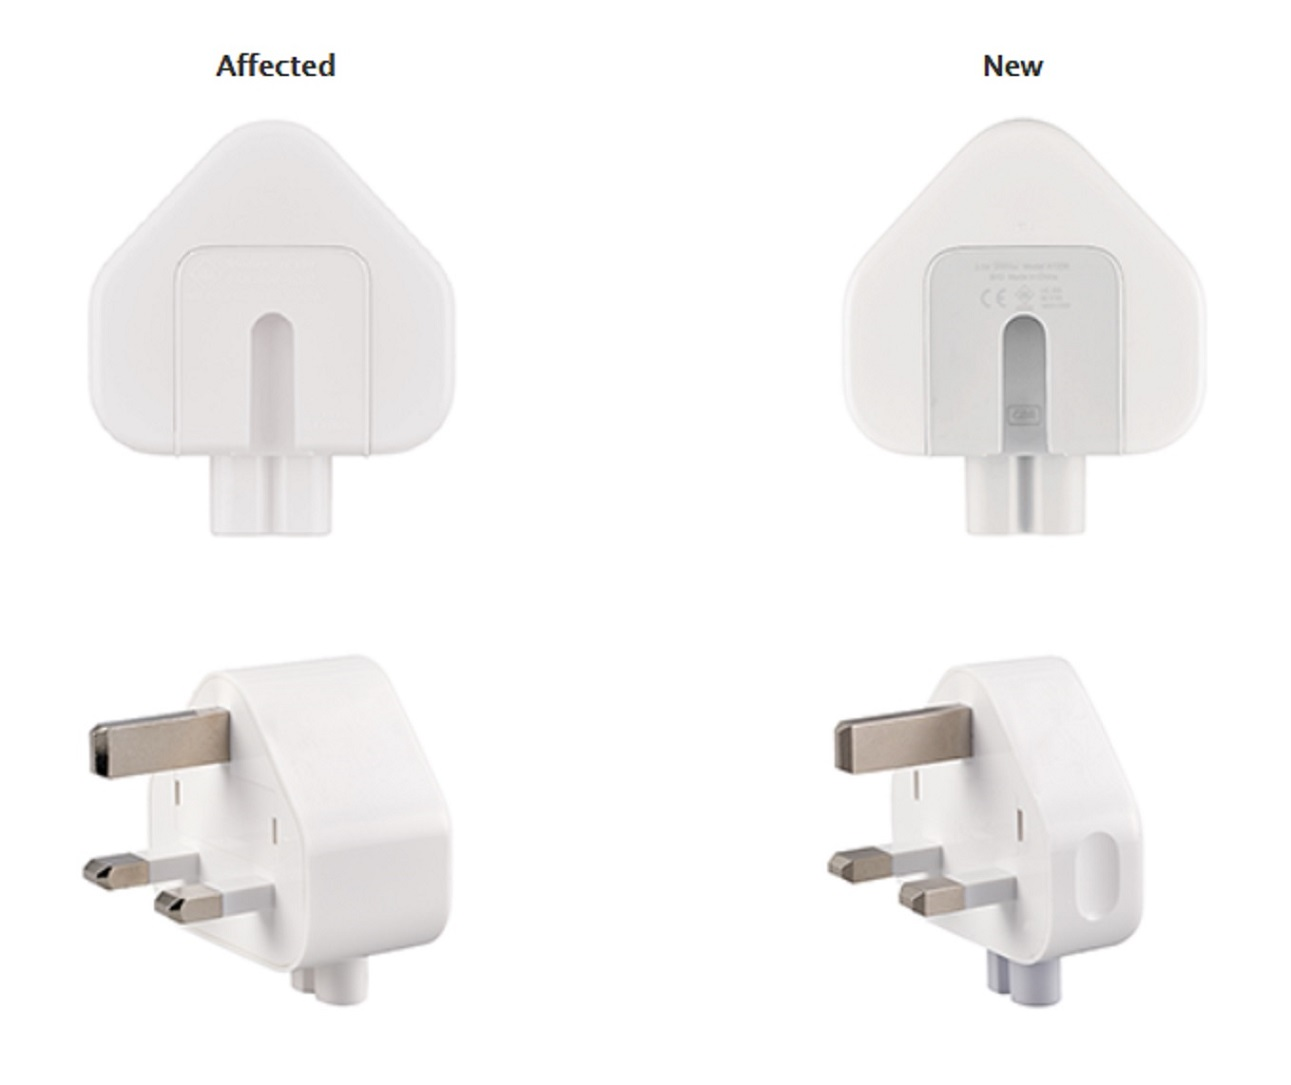 Apple recalls wall plugs used in UK, Hong Kong, and Singapore